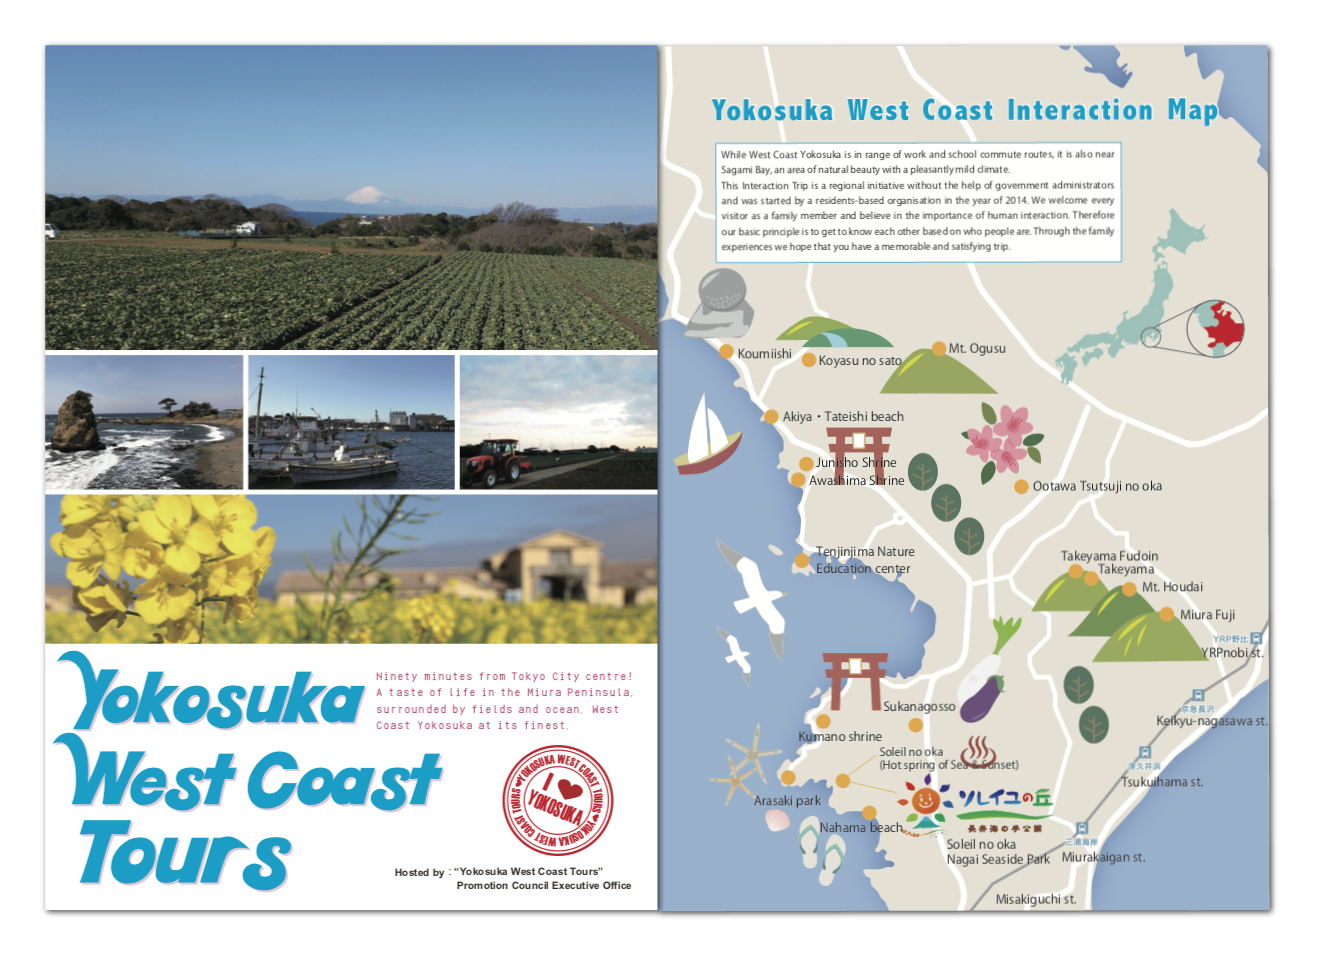 """Yokosuka West Coast Tours"" English brochure"